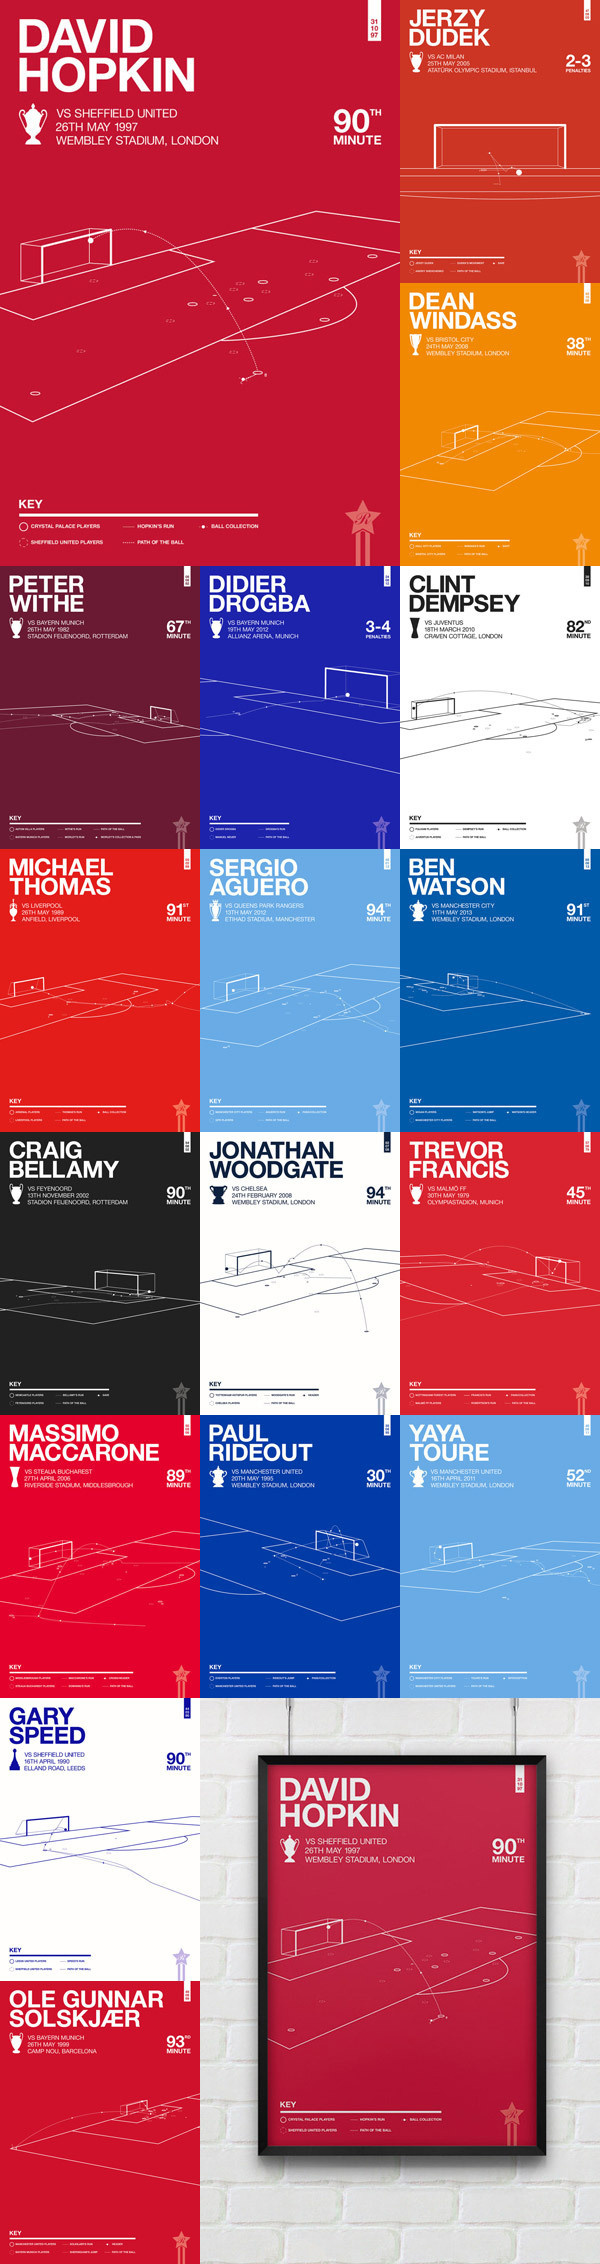 Collection of Graphic Prints for Iconic Football Moments Created by Rick Hincks #goal #diagram #soccer #illustration #football